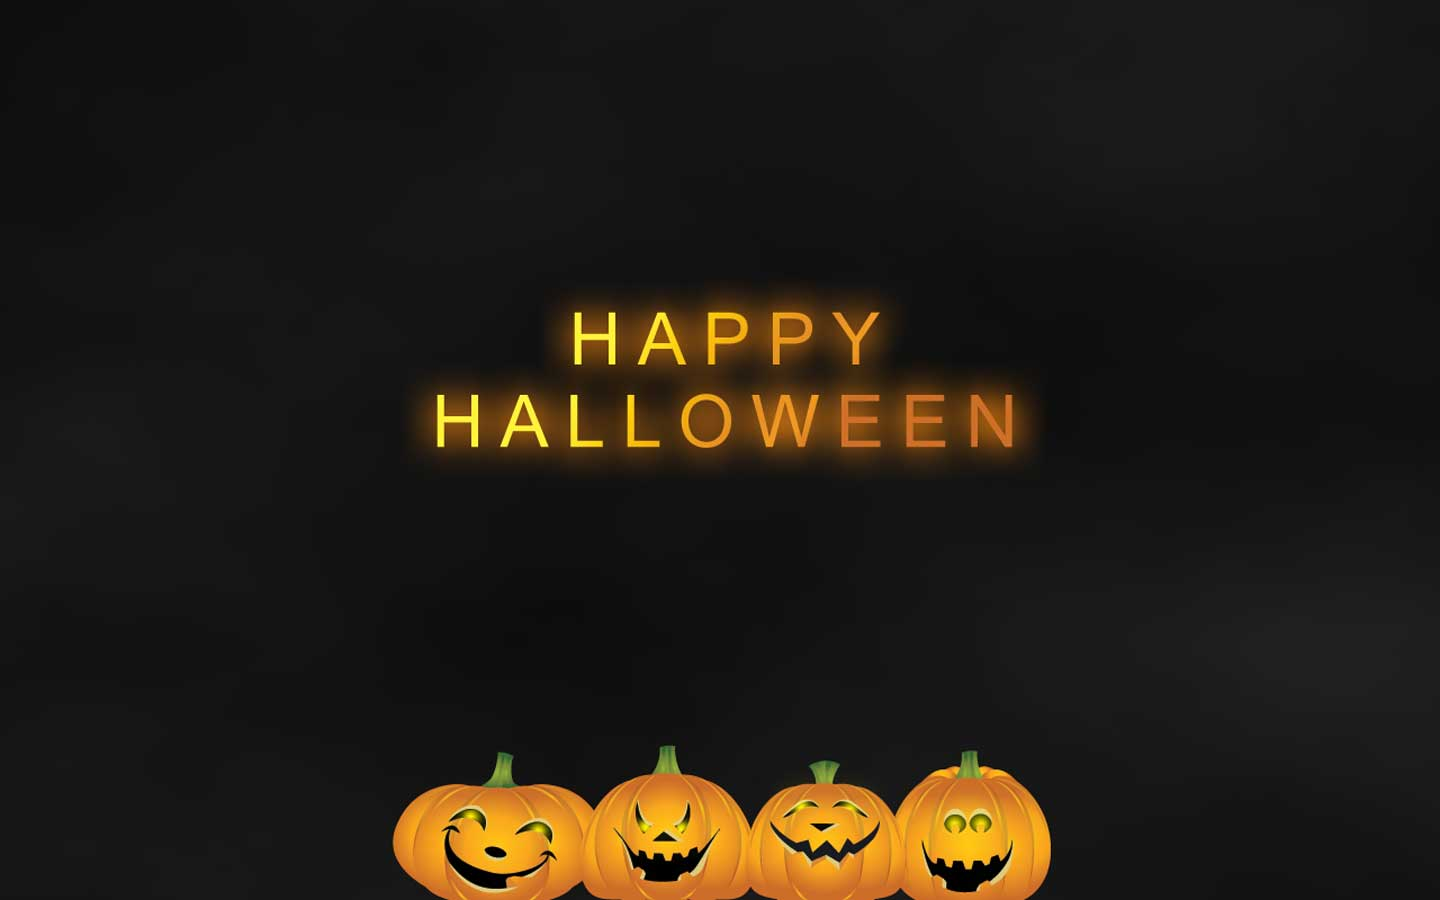 happy halloween wallpapers - photo #5